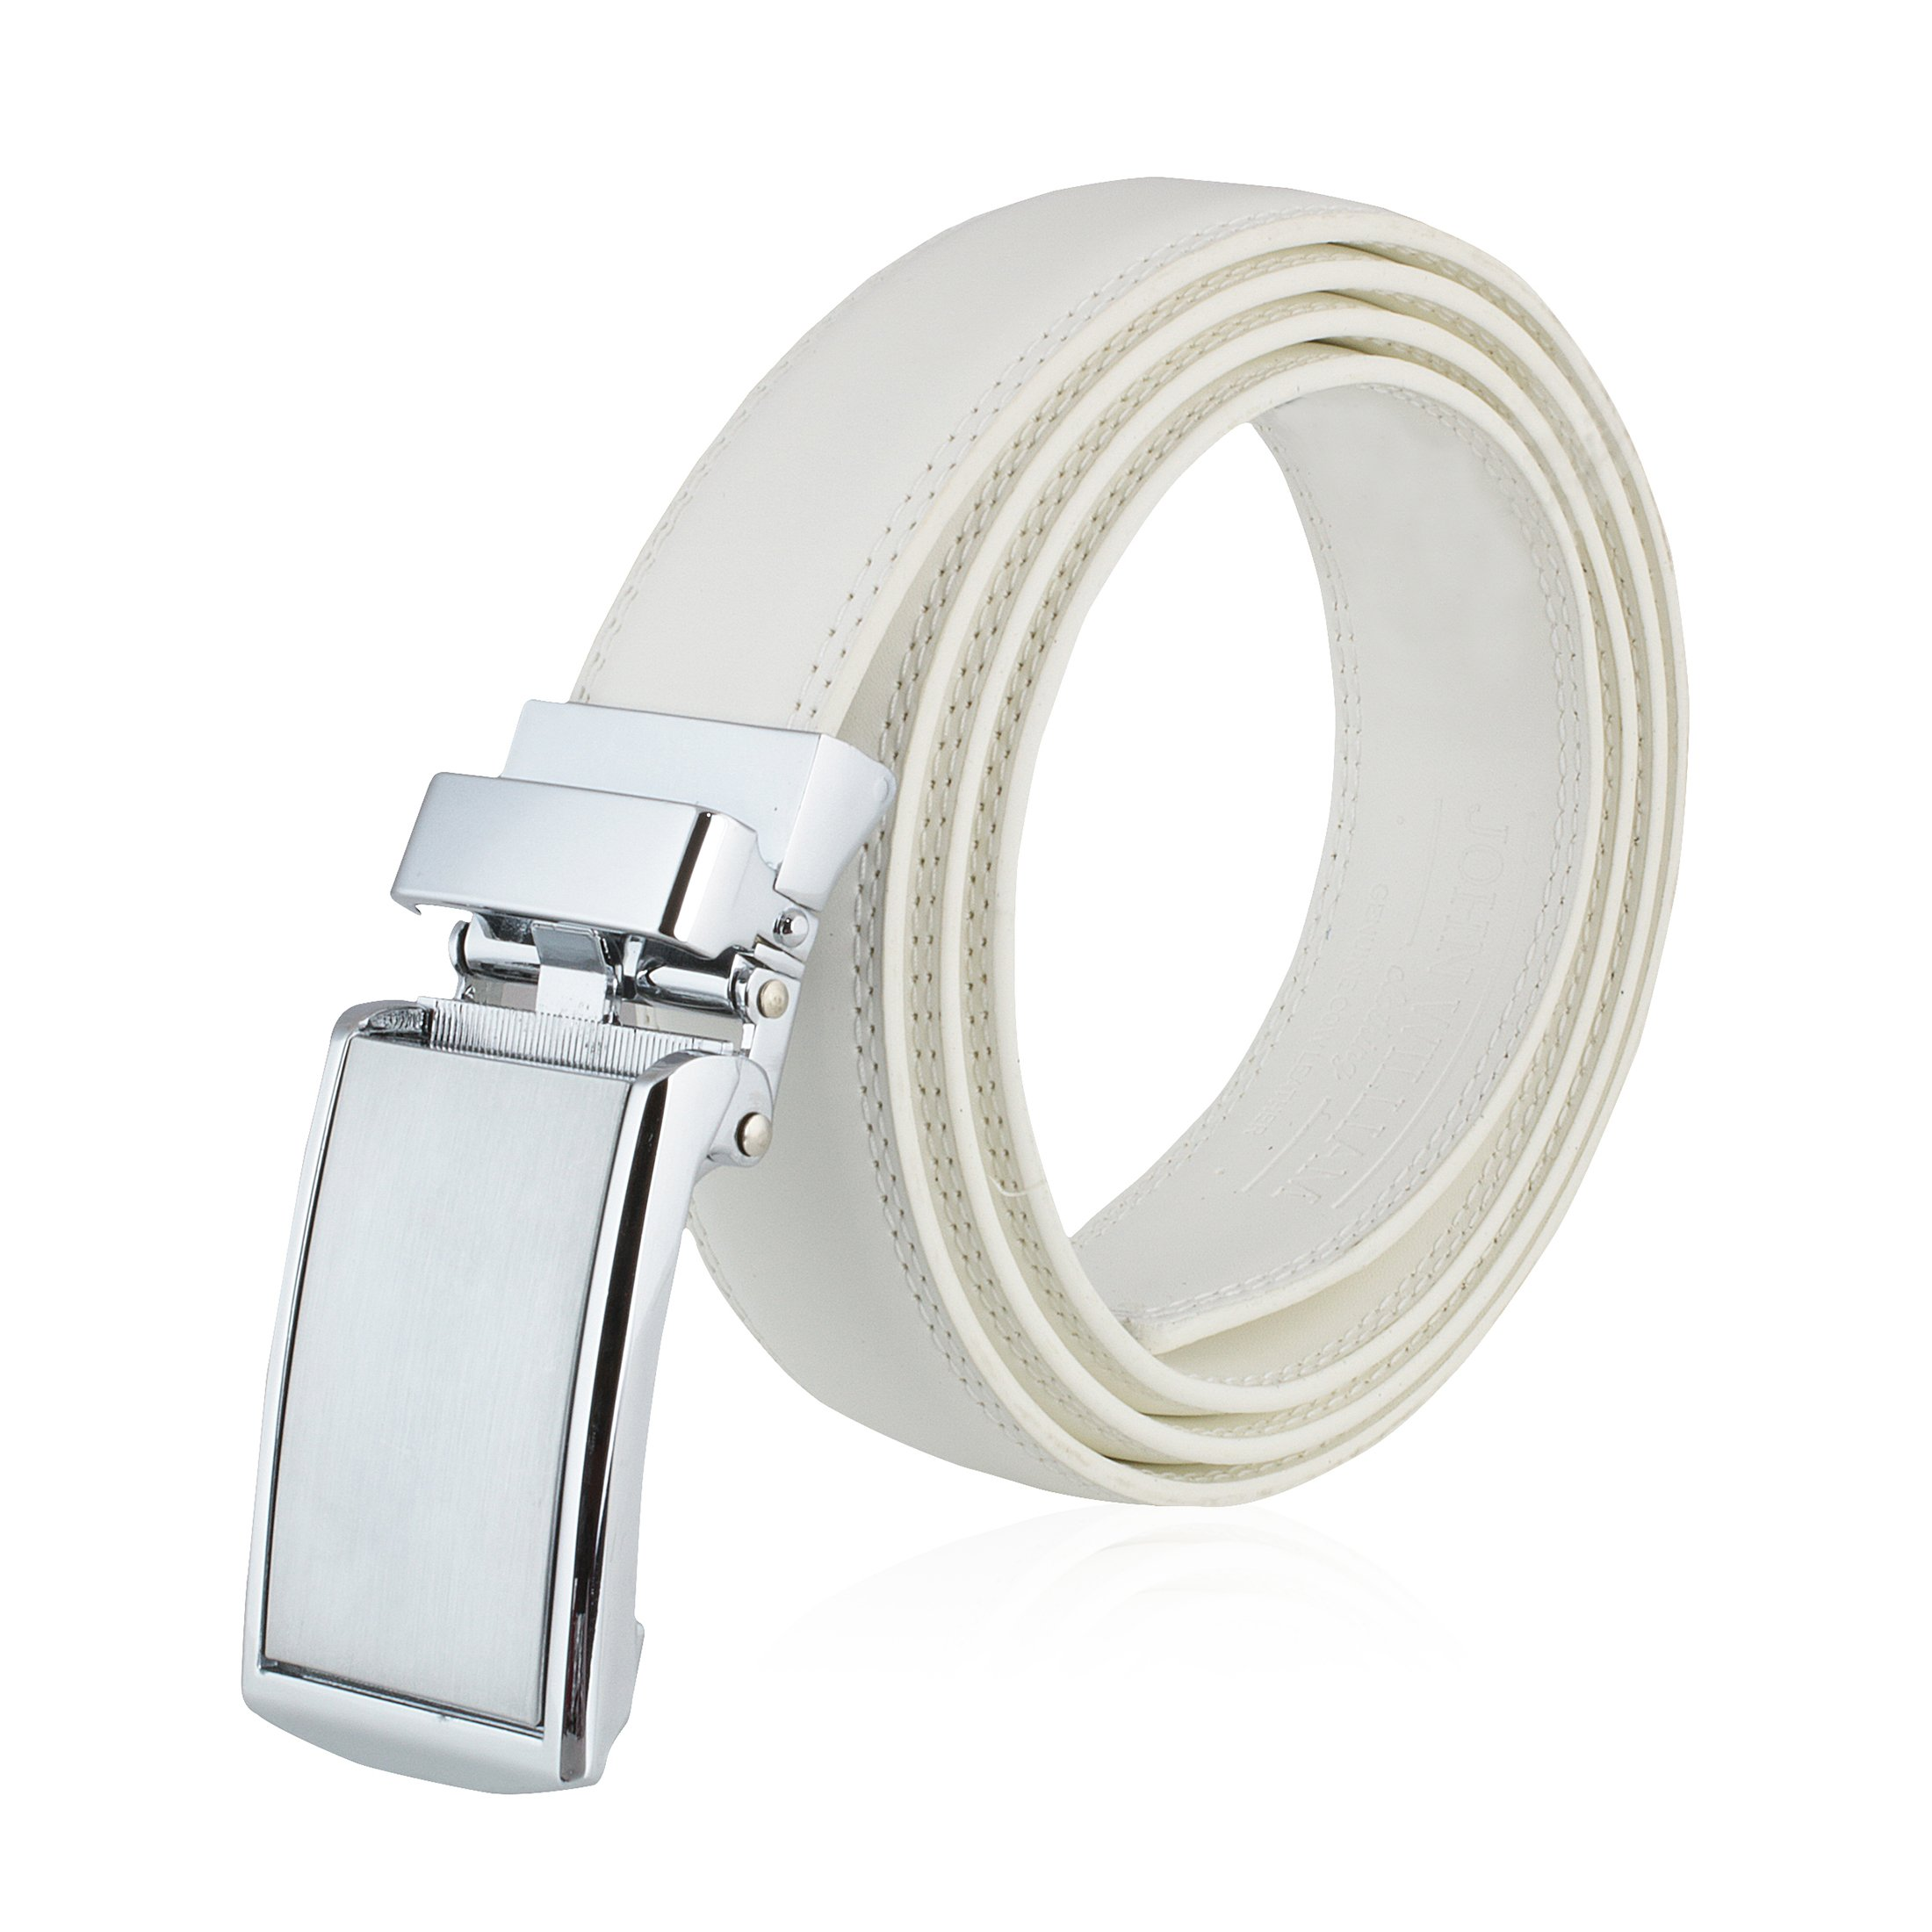 Men's Genuine Leather Ratchet Belt: Stainless Steel Buckle Dress Belts for Business, Formal & Casual Wear - White